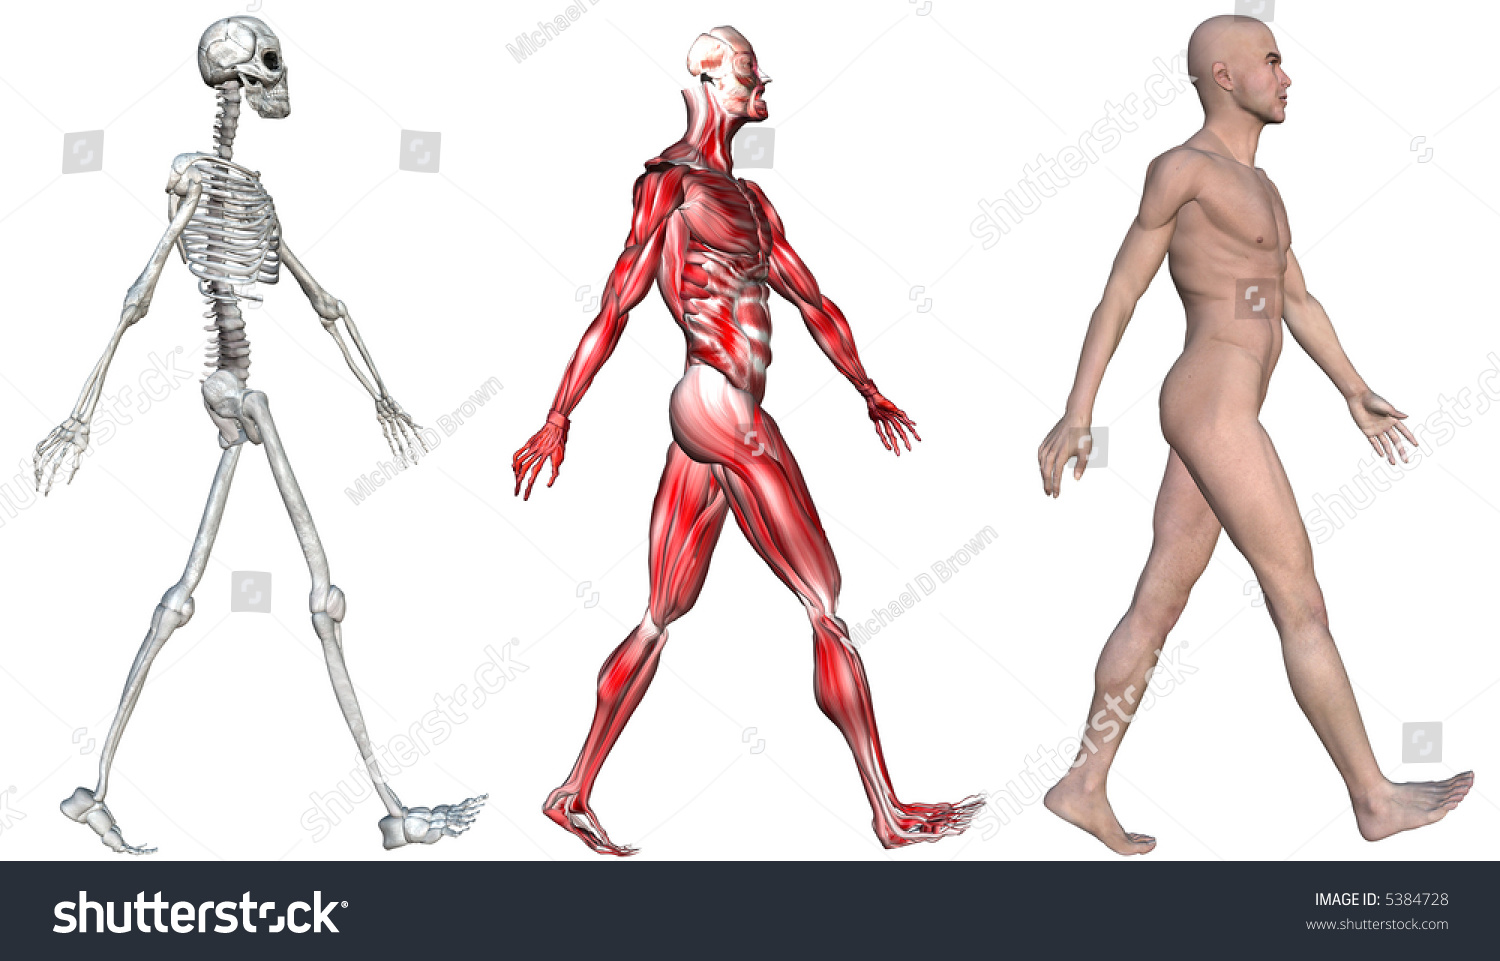 anatomical illustration skeleton muscles walking human stock, Skeleton